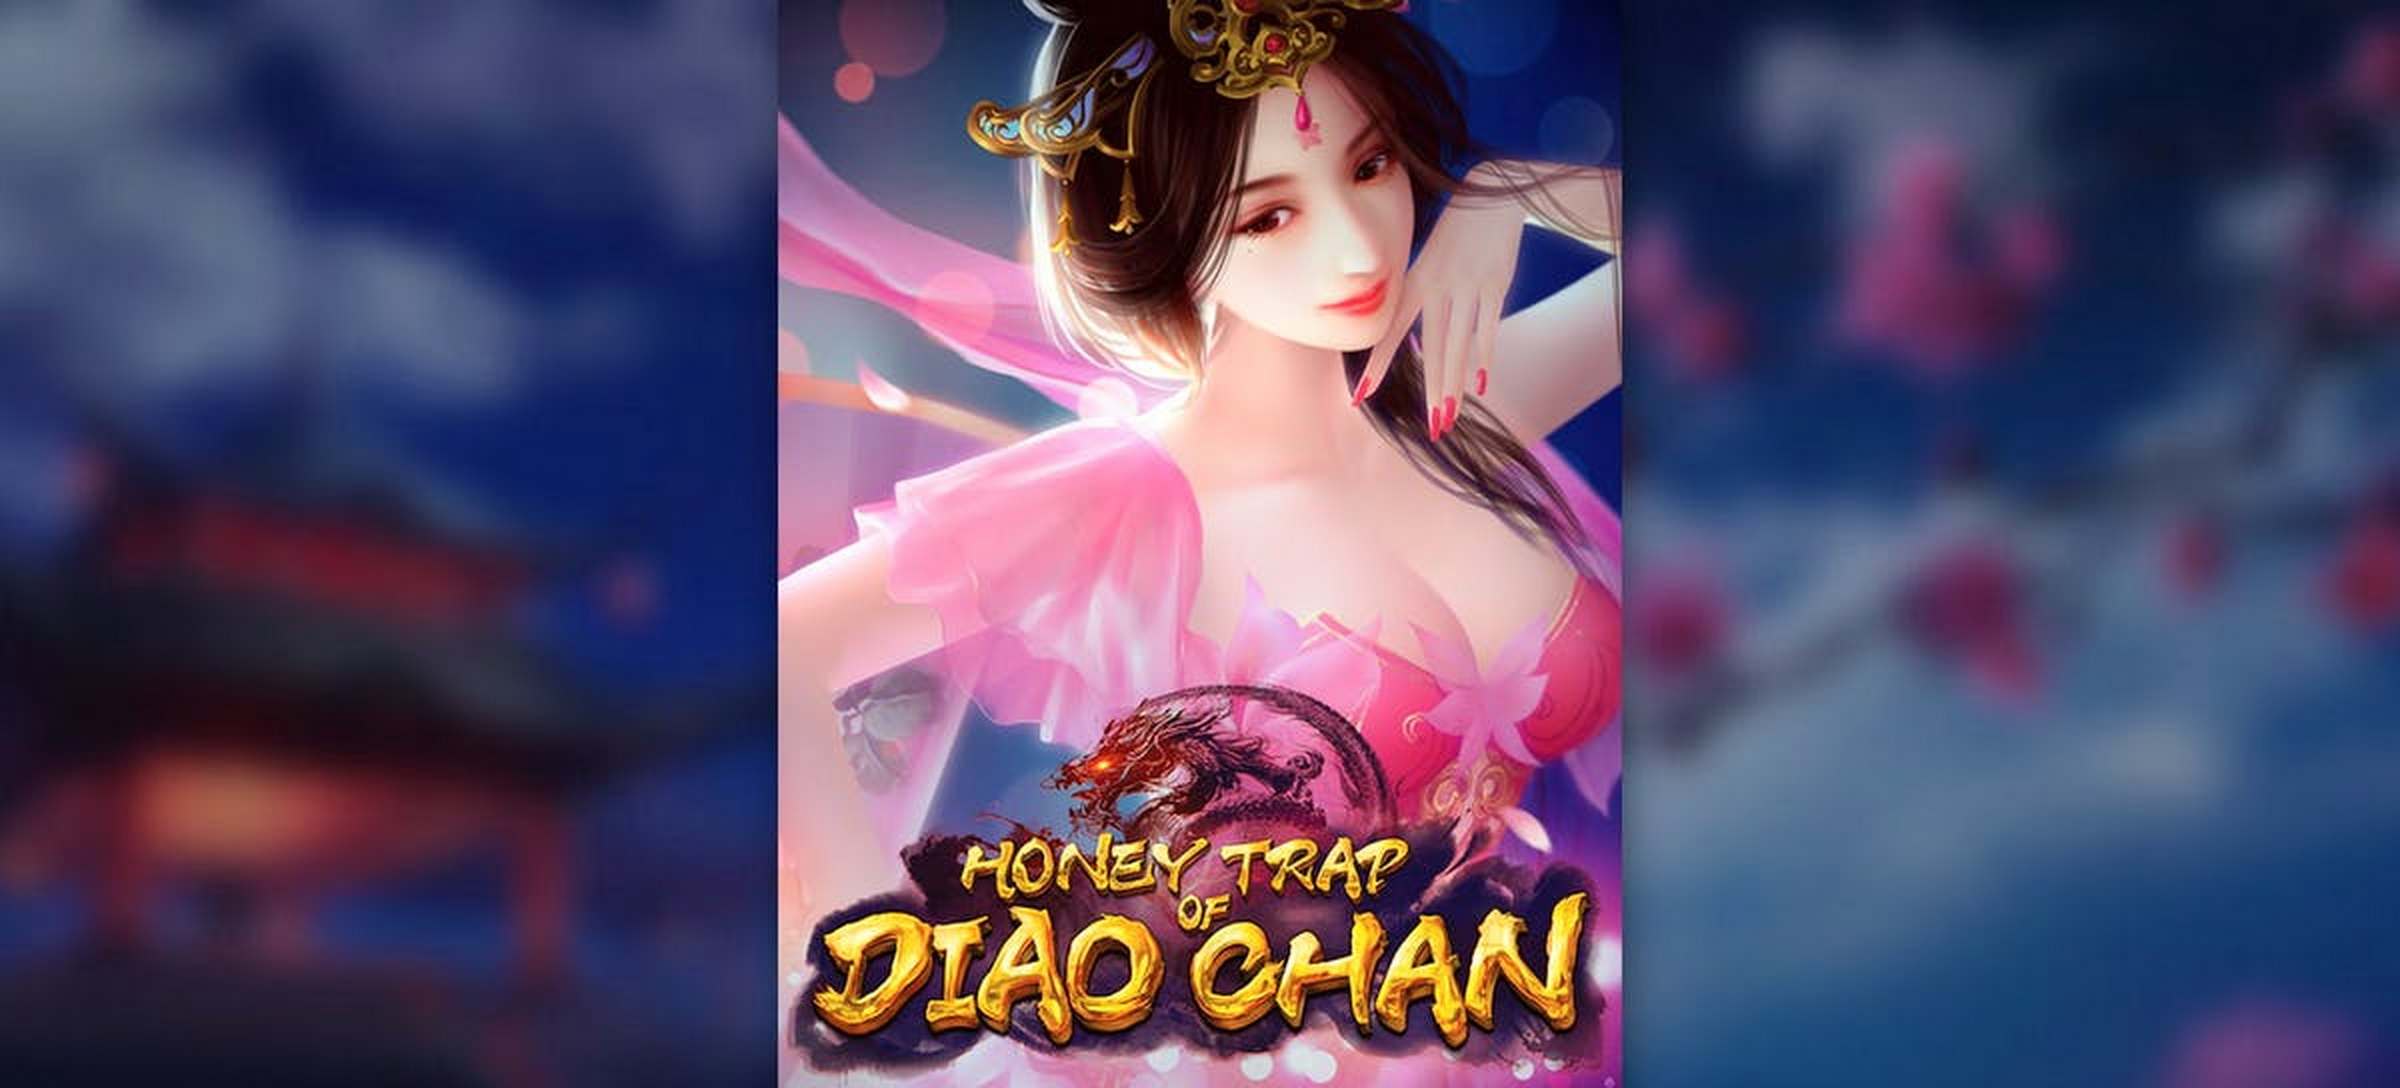 The Honey Trap of Diao Chan Online Slot Demo Game by PG Soft